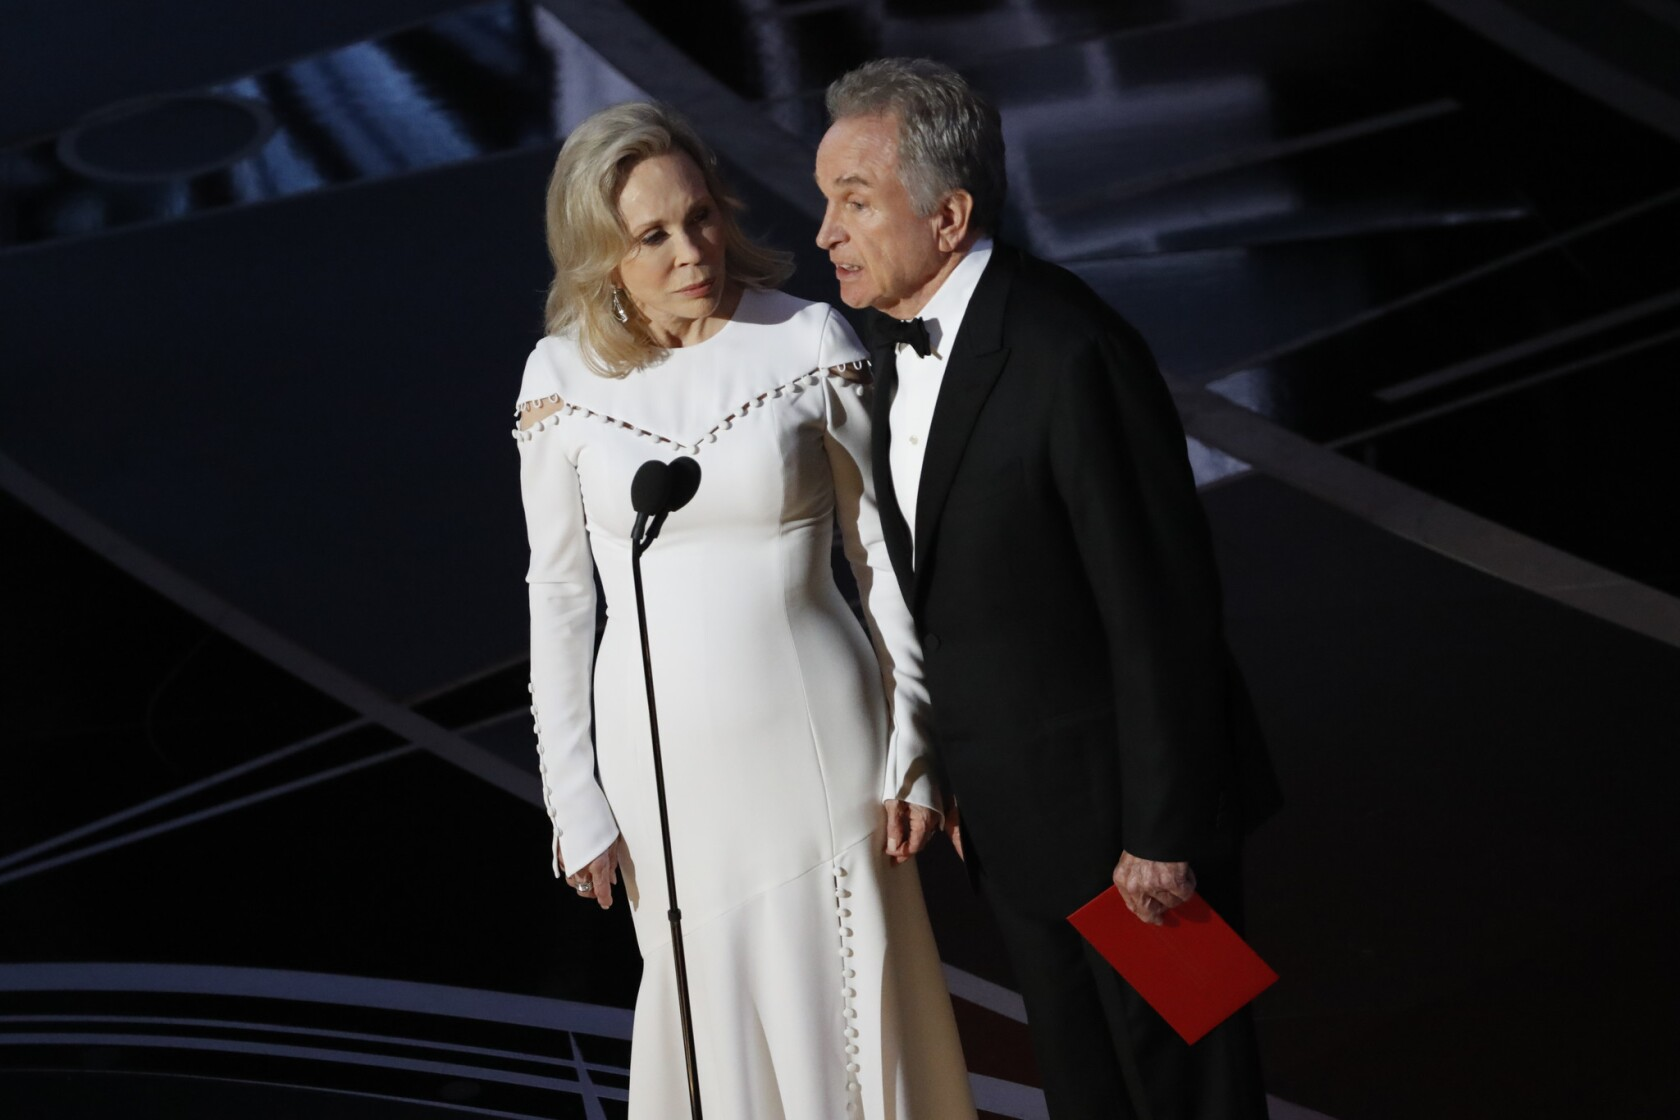 Lionsgate wins big at Oscars but A24 conquers with